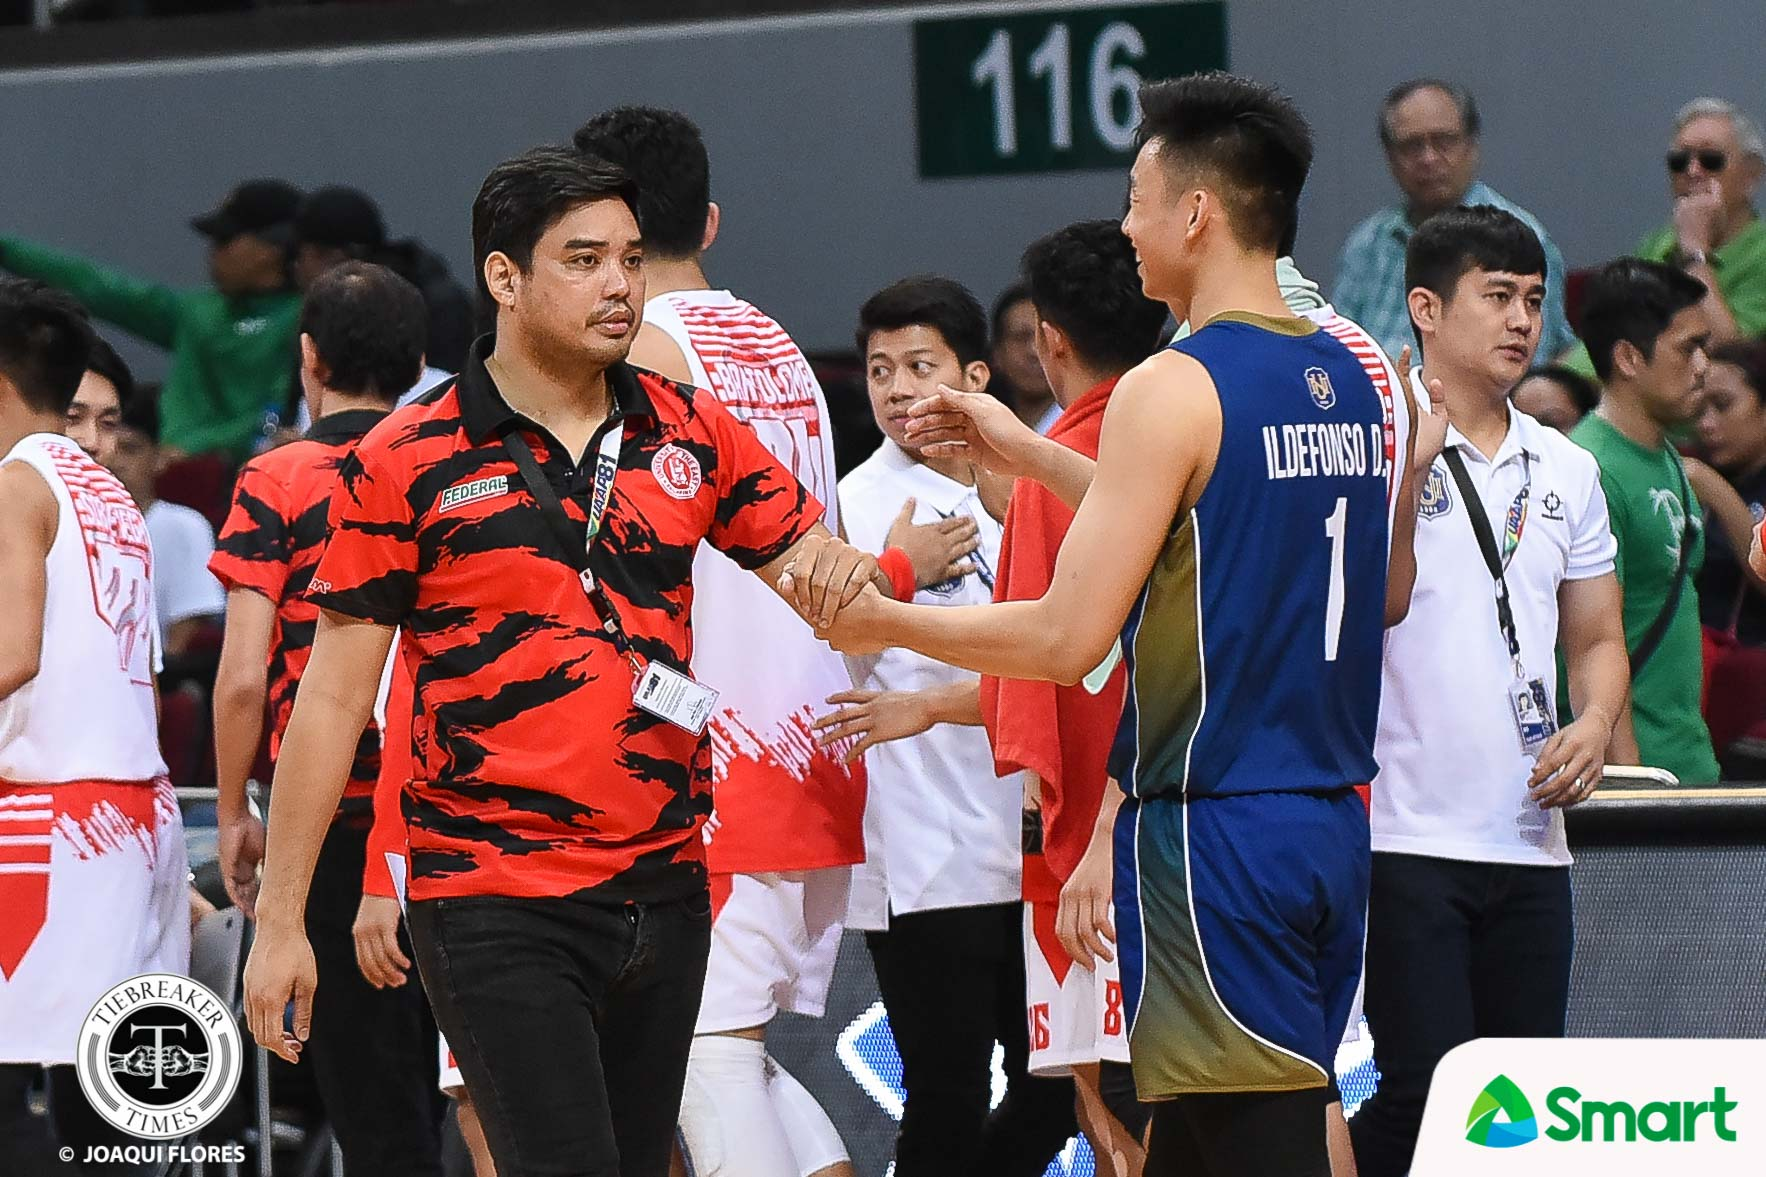 Tiebreaker Times Dave Ildefonso and Joe Silva had a deal prior to NU-UE game: 'Barilan kami pag nakaka-shoot' Basketball News NU UAAP UE  UE Men's Basketball UAAP Season 81 Men's Basketball UAAP Season 81 NU Men's Basketball Joe Silva Dave Ildefonso